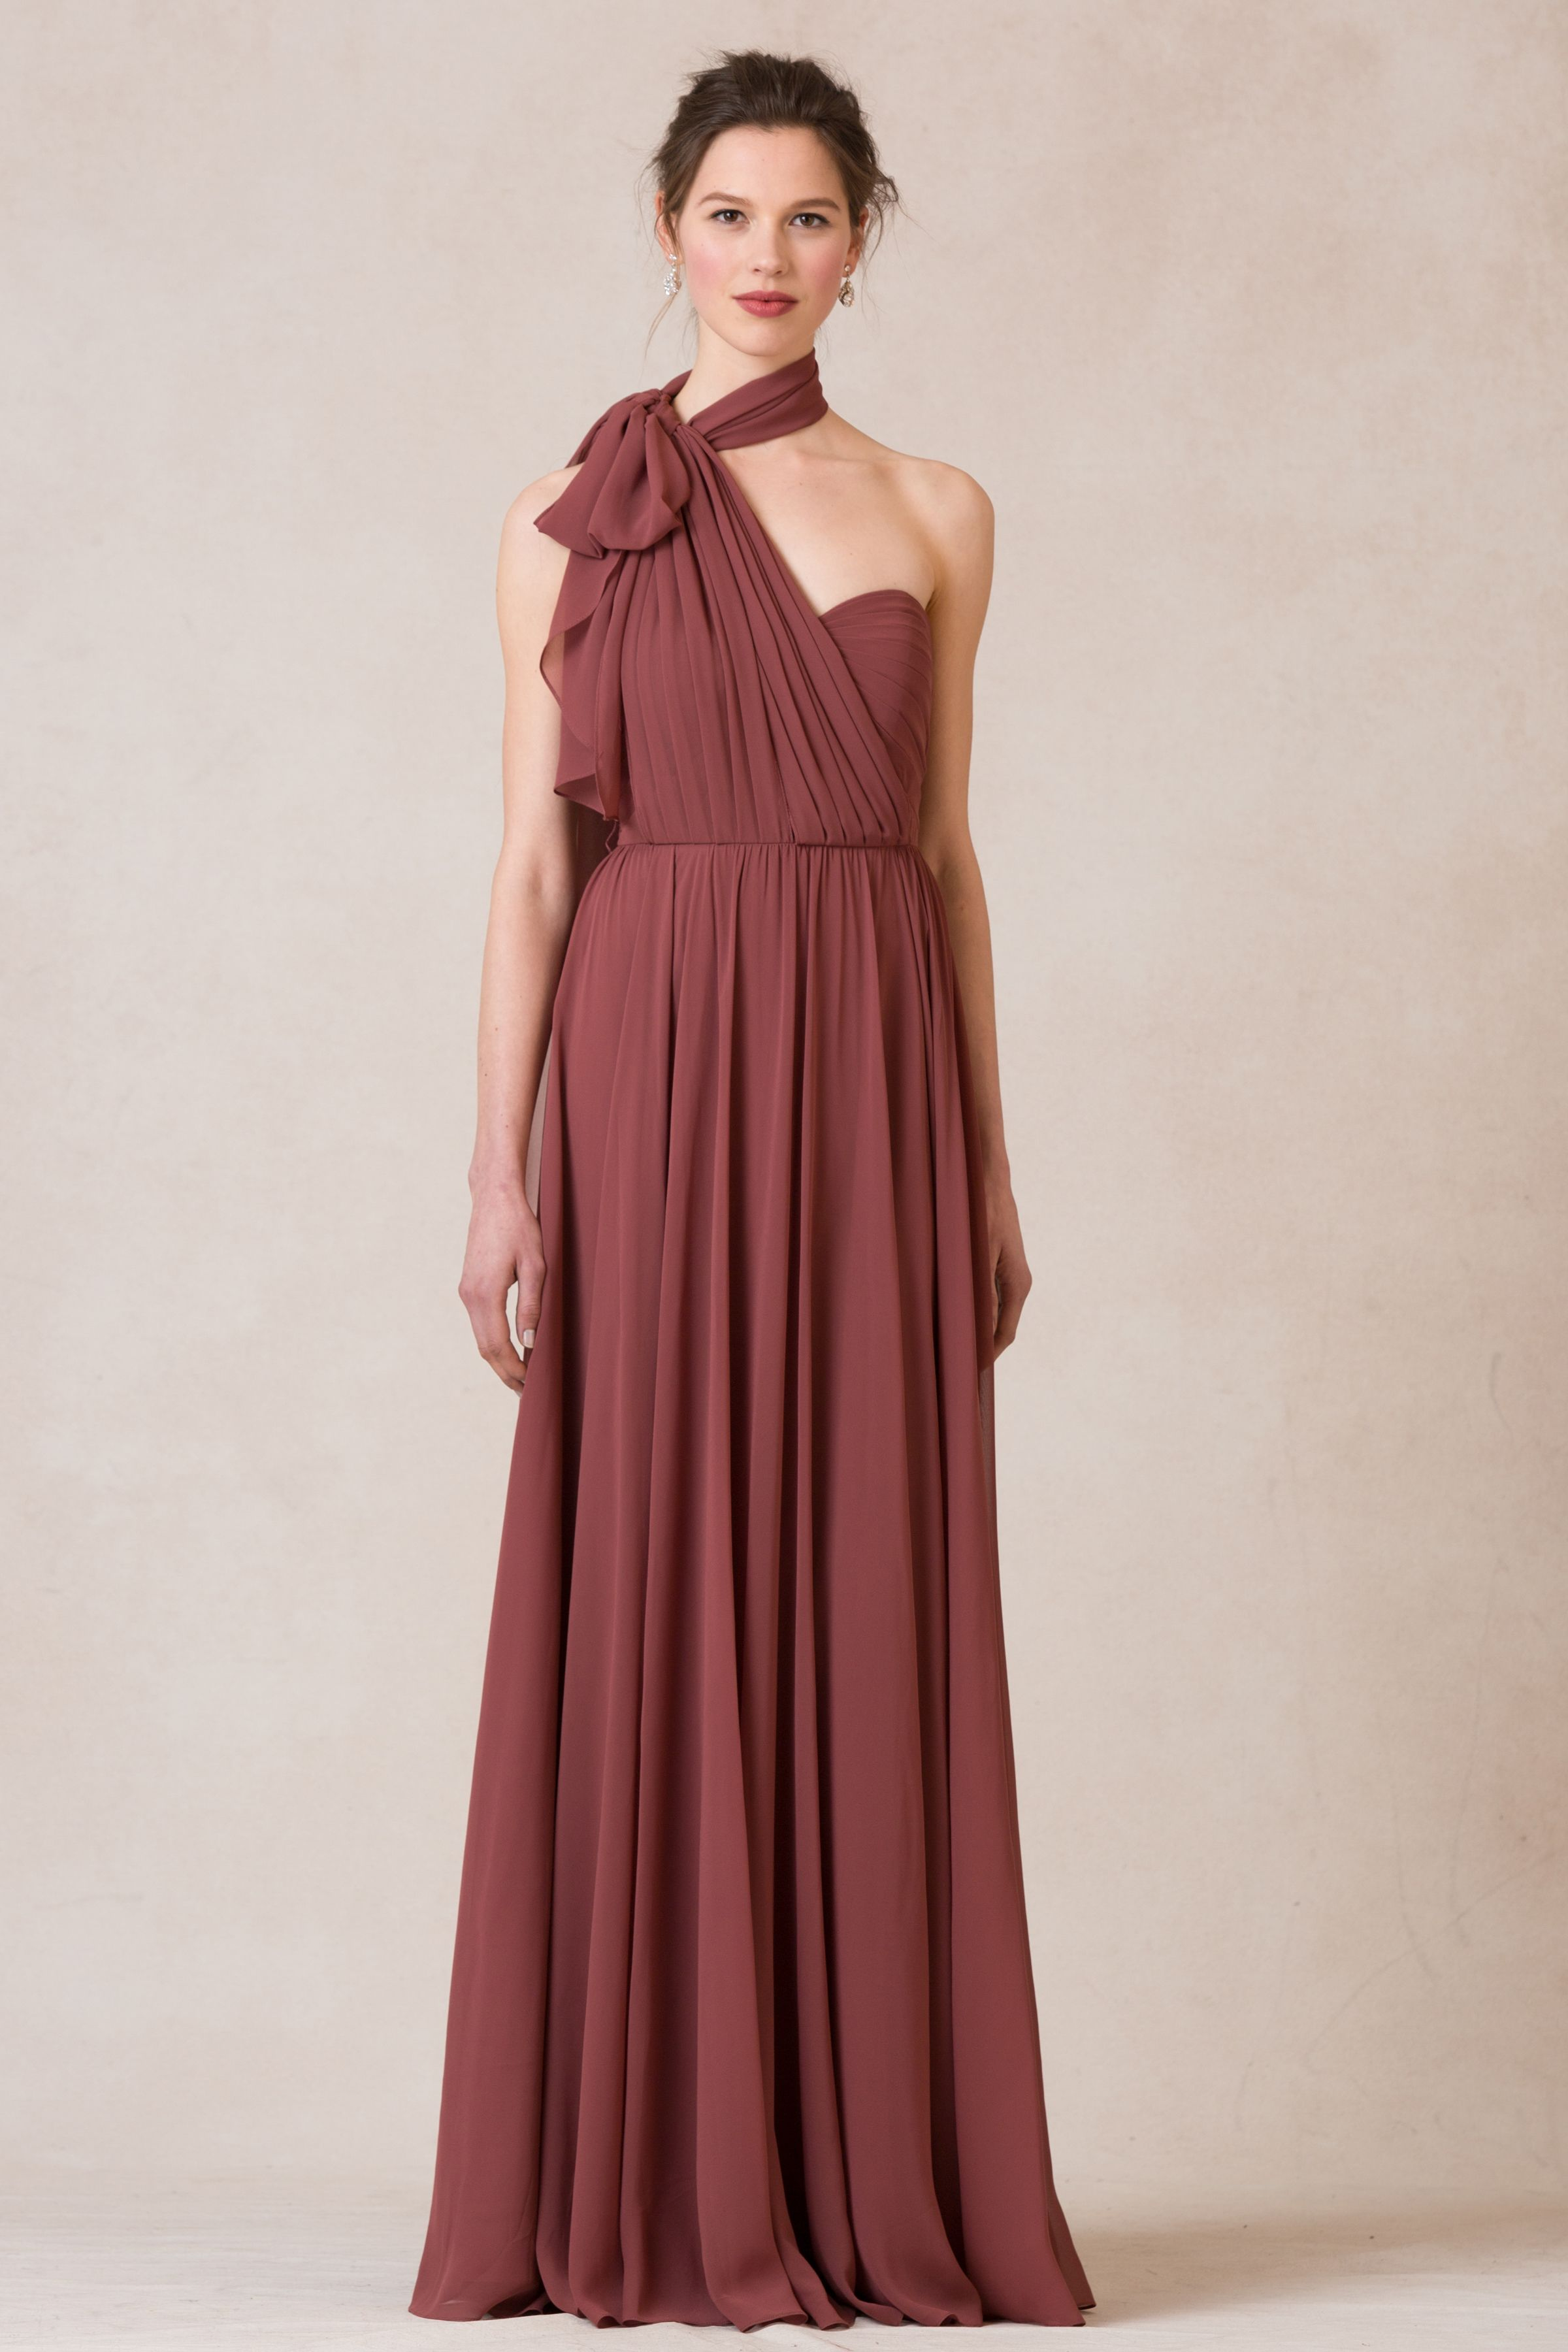 08e9b2034f0e Mira Dress in Cinnamon Rose by Jenny Yoo | Nabi | Convertible ...